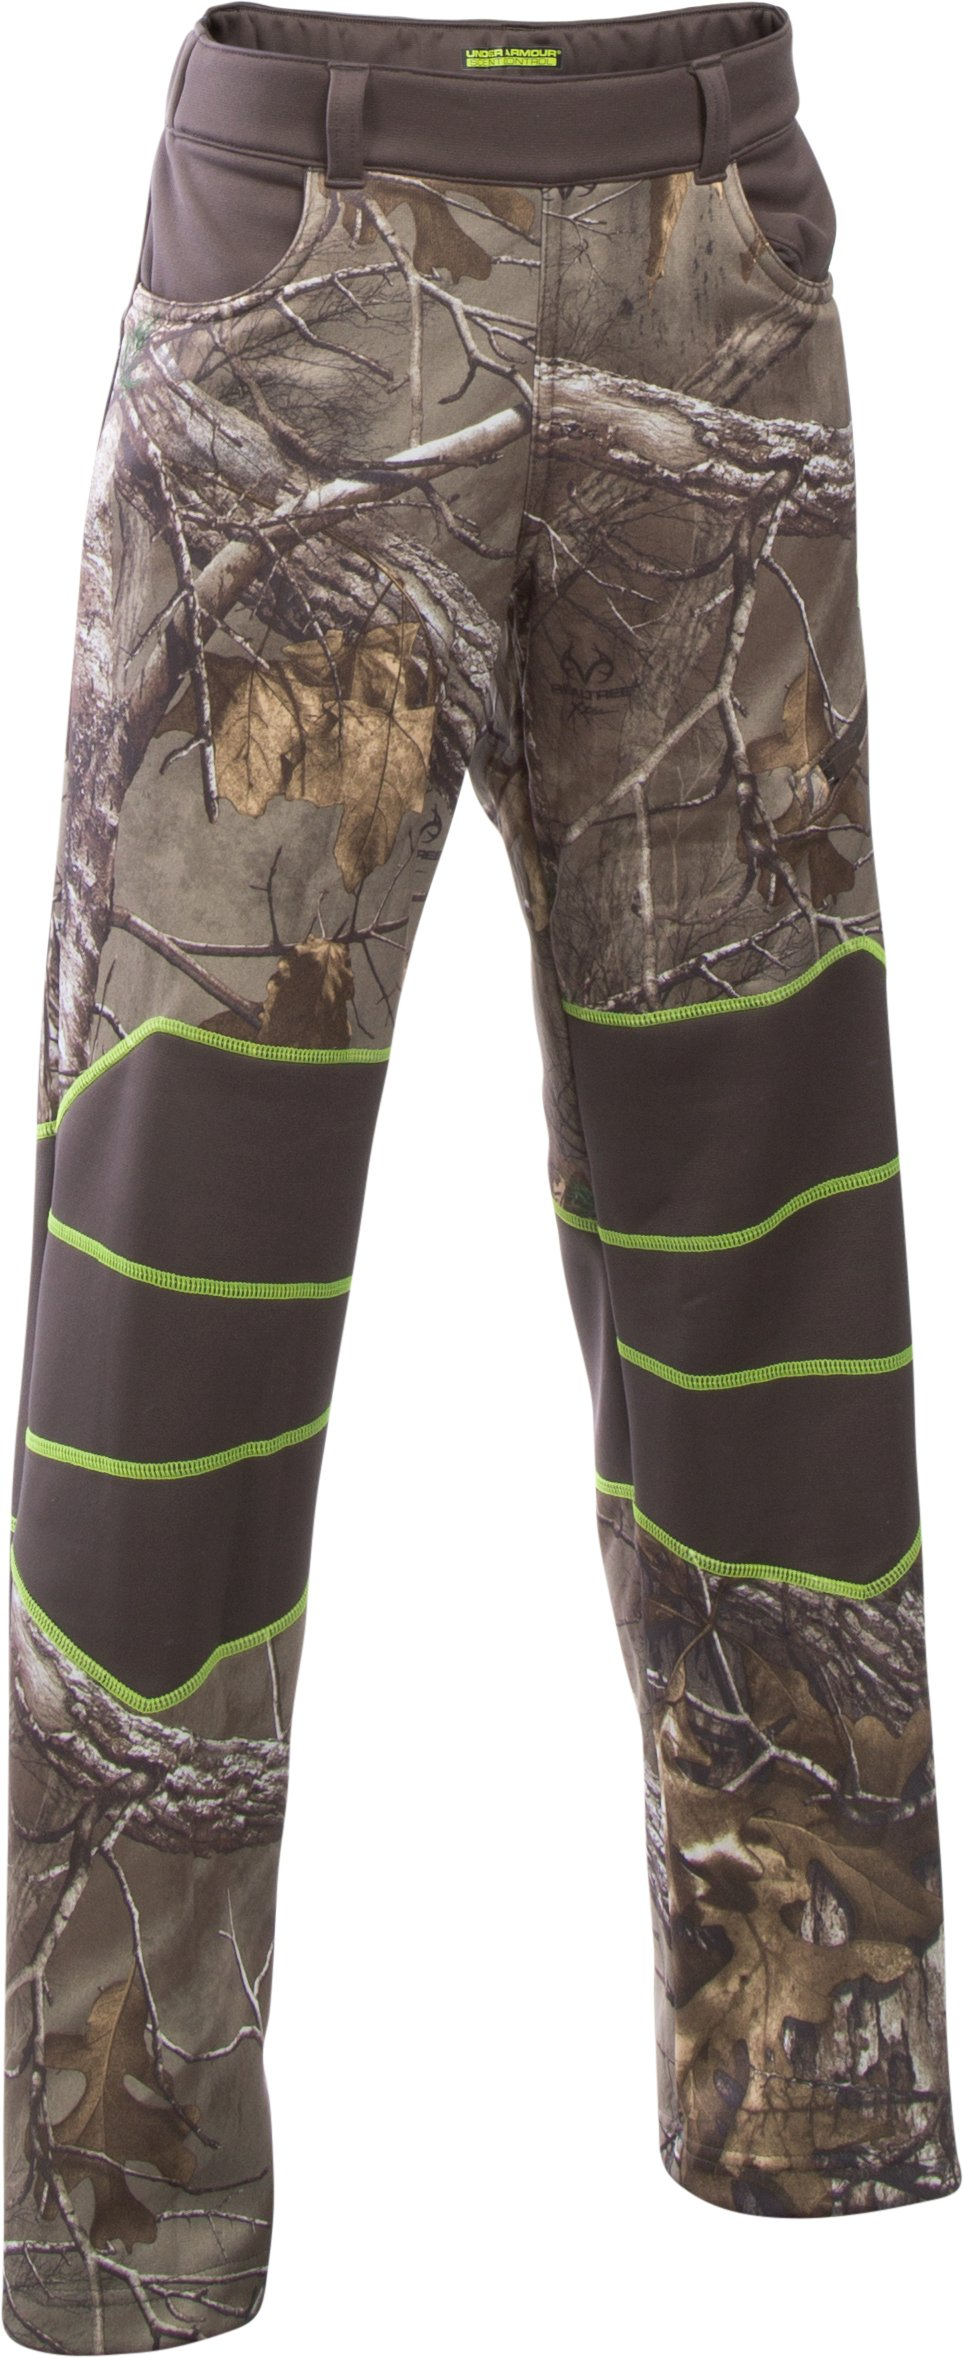 Boys' UA Scent Control Fleece Pants, REALTREE AP-XTRA, undefined